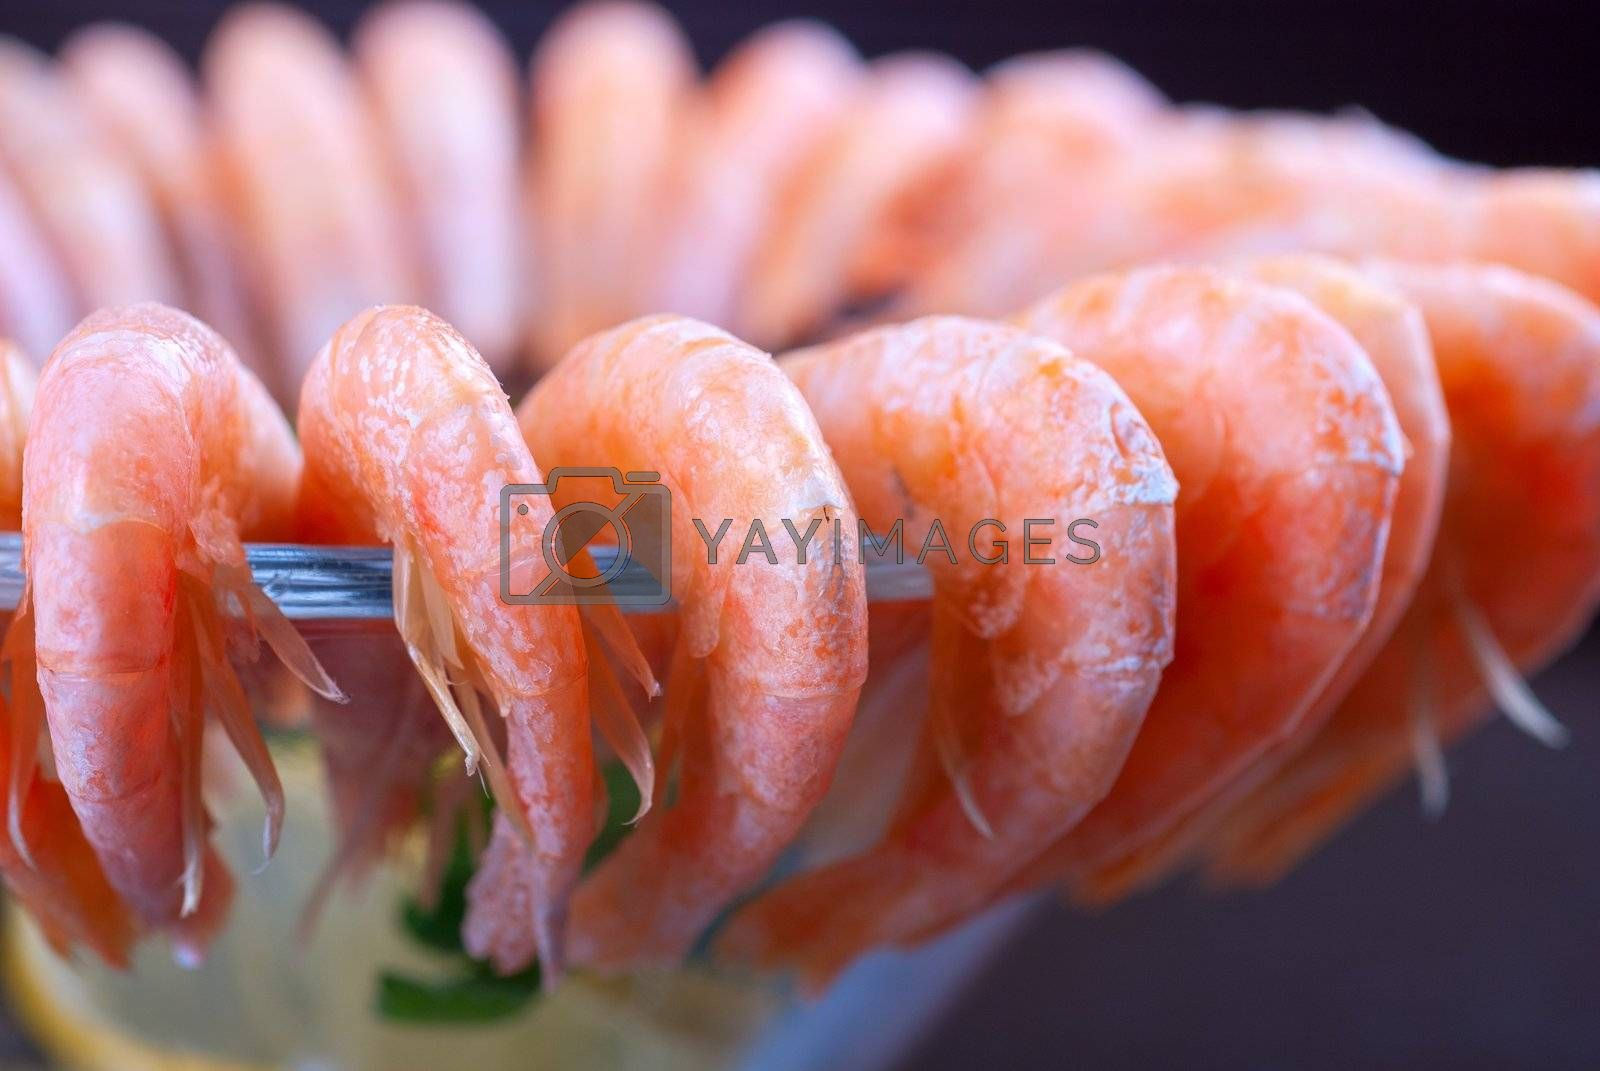 tasty shrimps with lemon and greens closeup